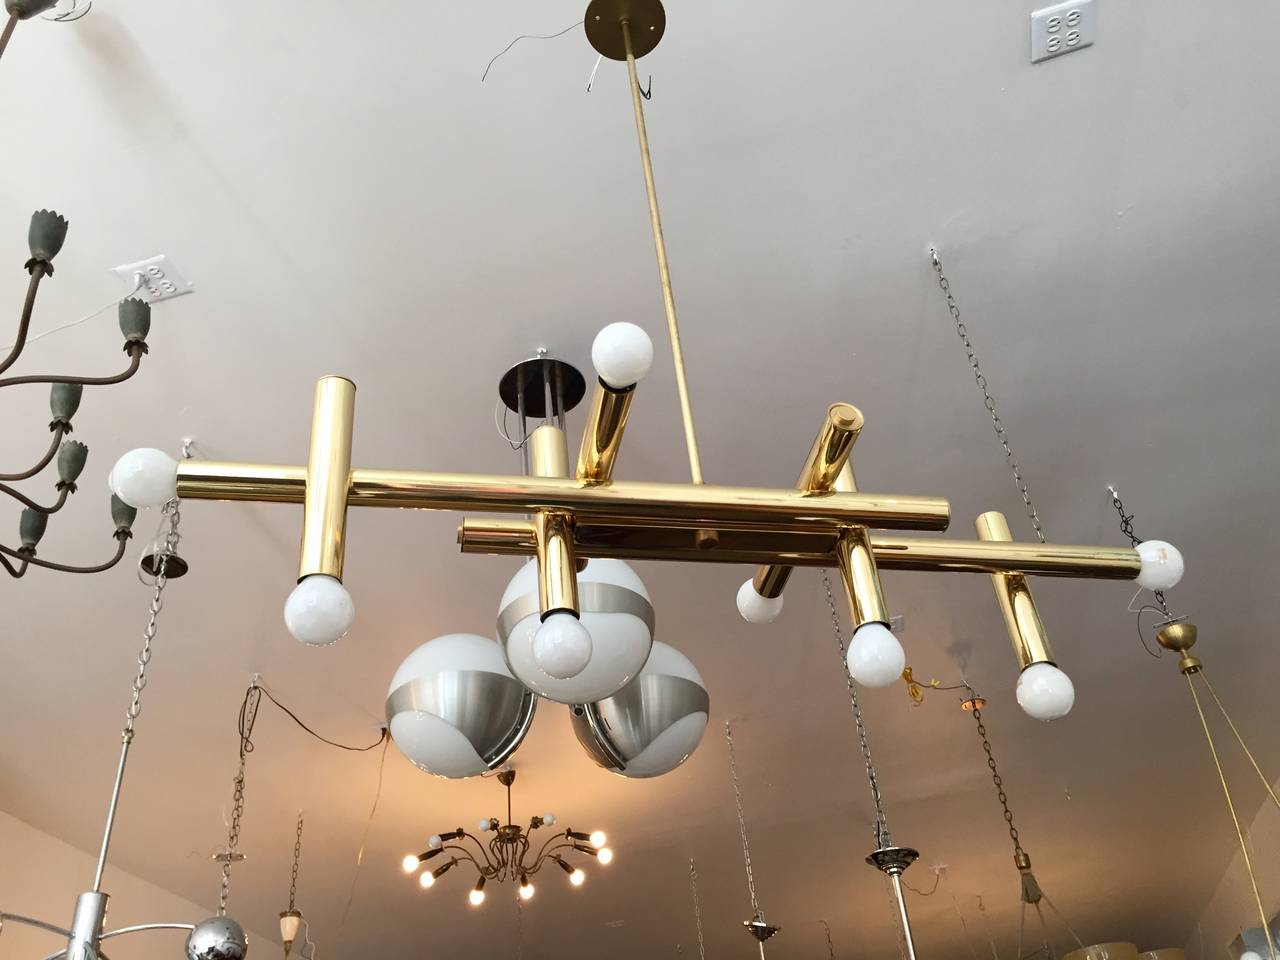 A sleek 1960s Italian Mid-Century ceiling light or chandelier composed of a high polished brass tubes fixture. Rewired. Matching flat circular disc canopy.